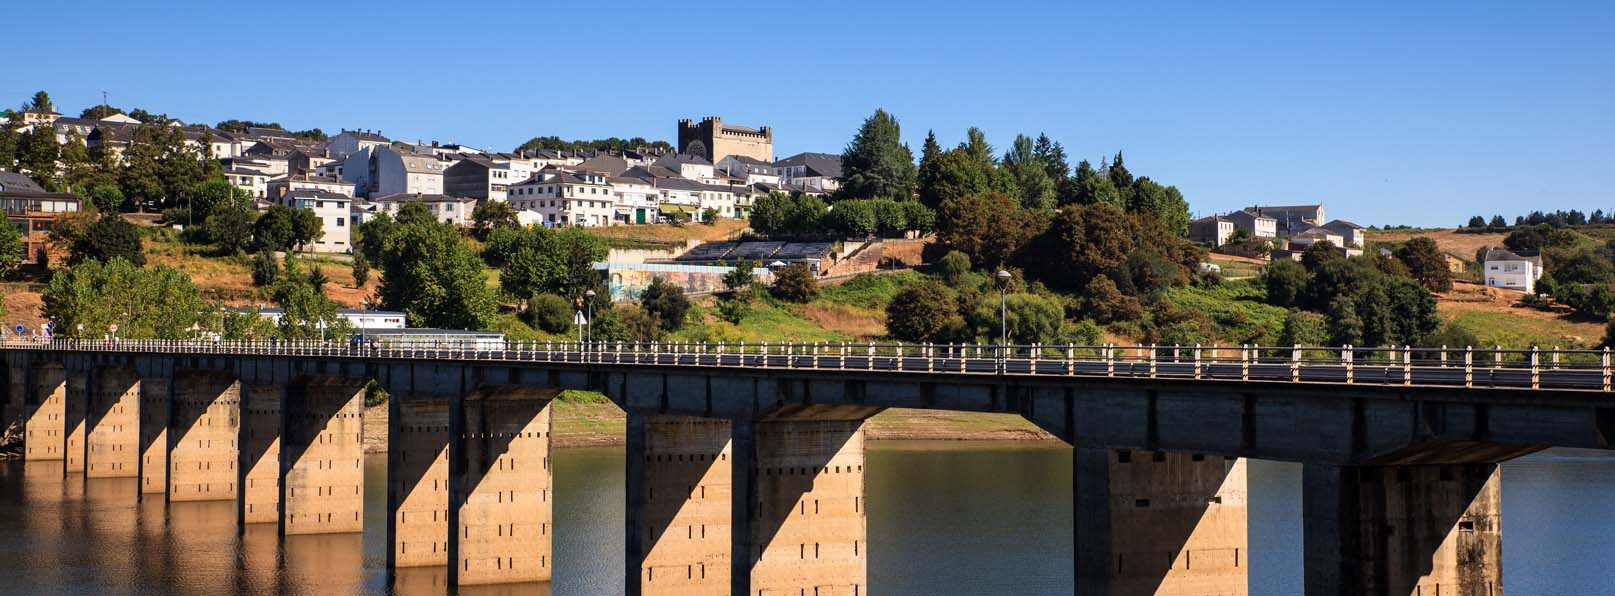 12 Day Camino de Santiago walk from France to Spain